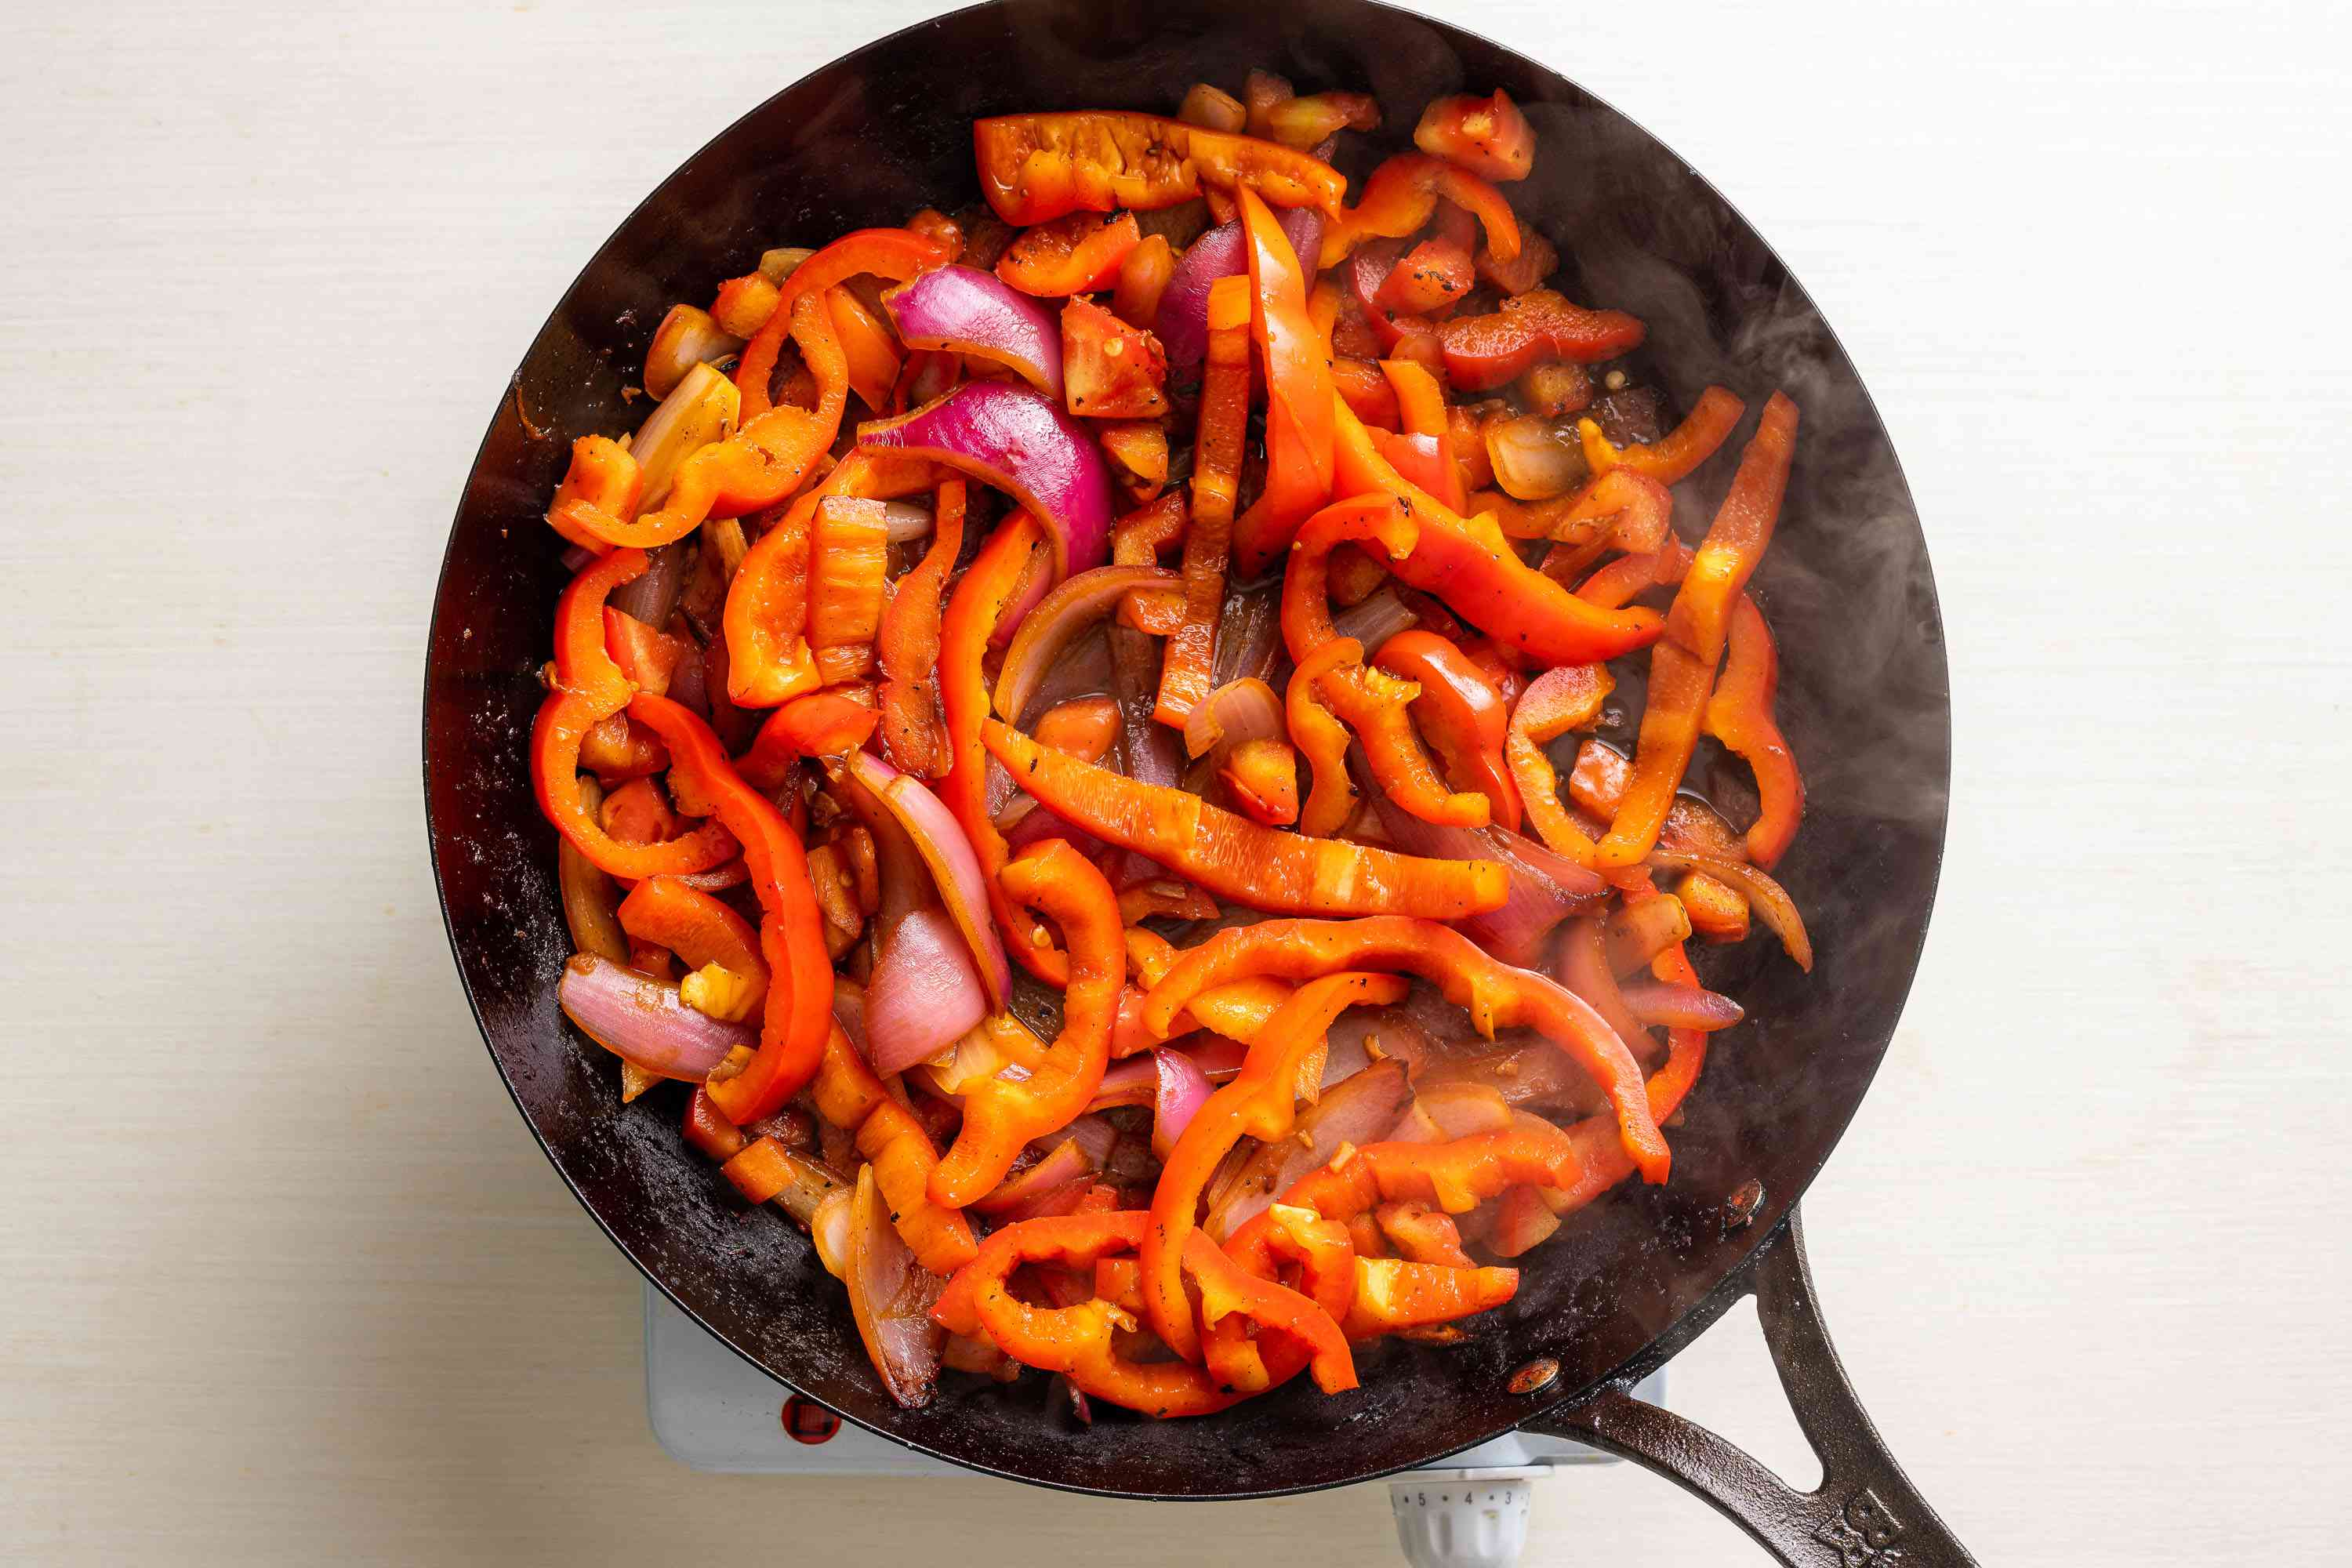 red peppers and tomato added to the pan